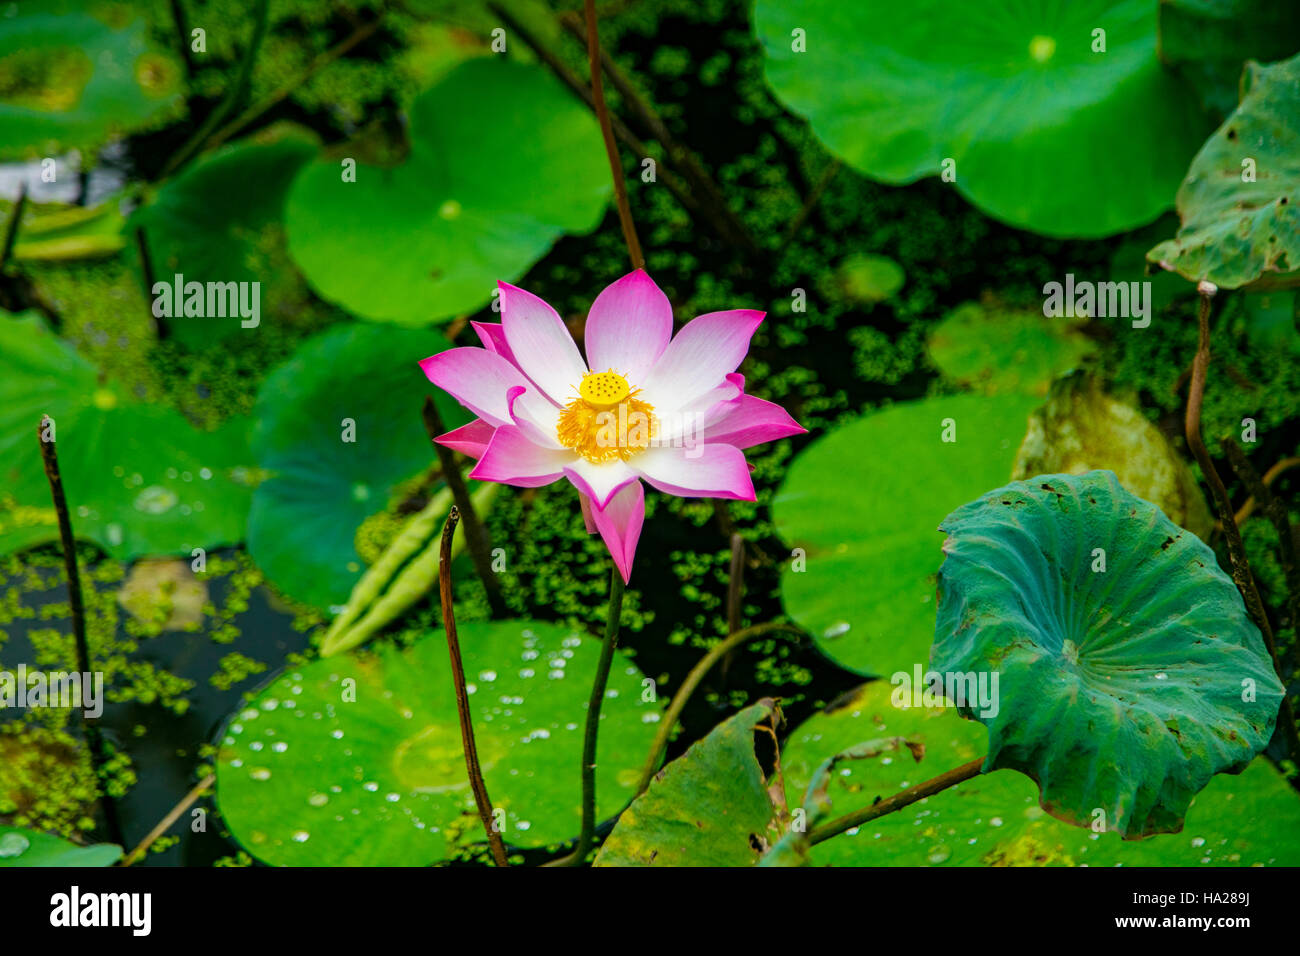 Lotus Blossom Flower Ving Trang Pagoda Vietnam Asia Stock Photo